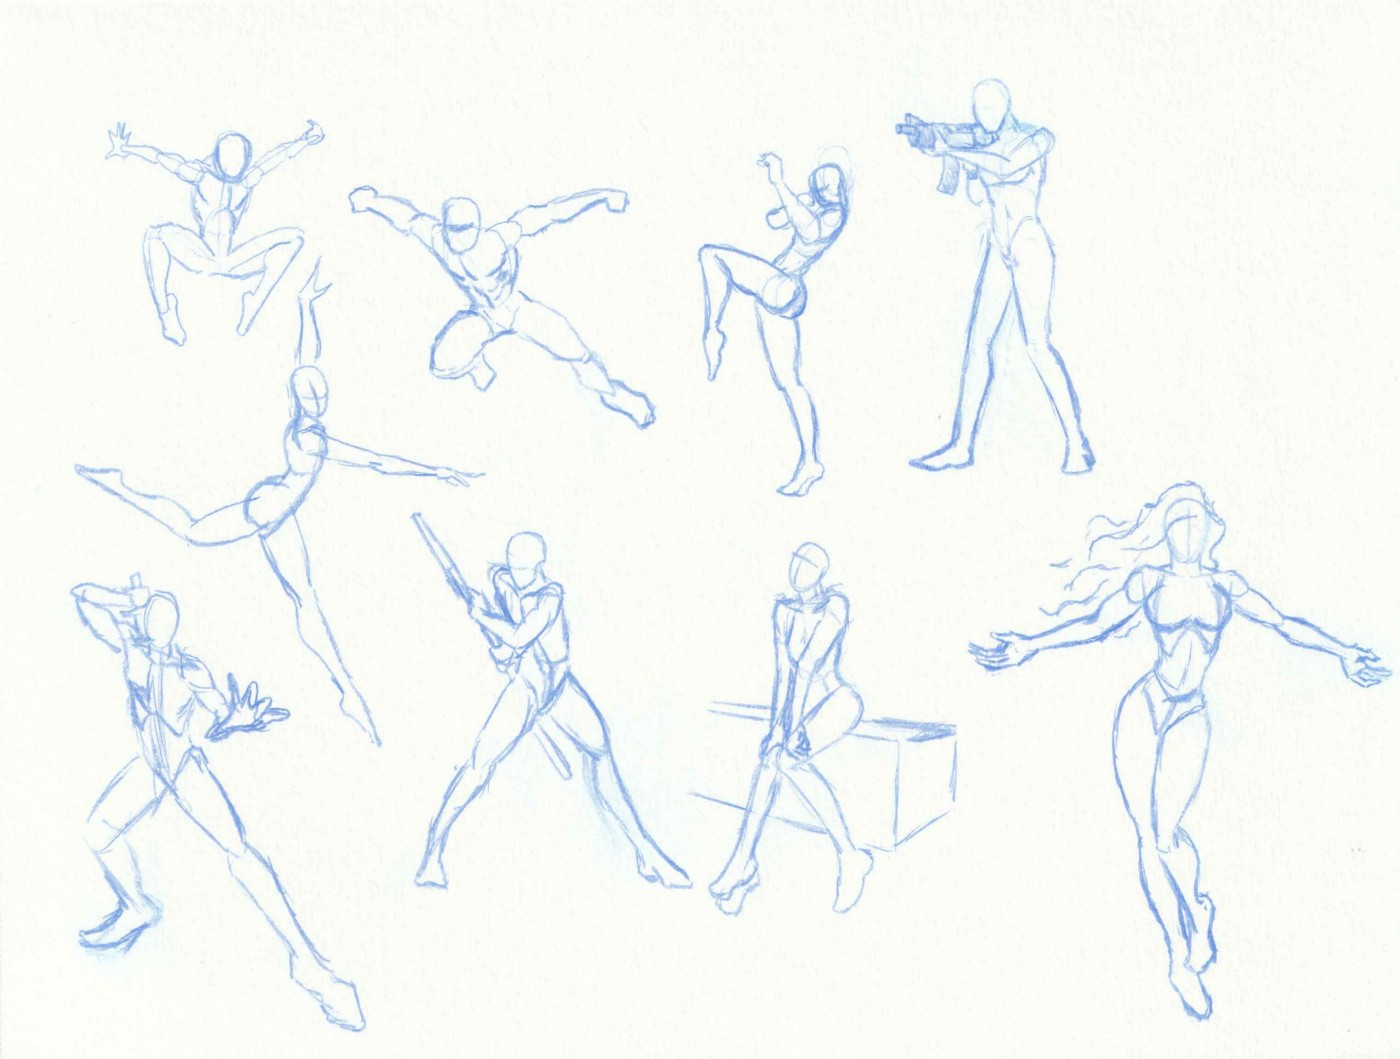 Various figures drawn in pencil, scanned from a sketchbook.